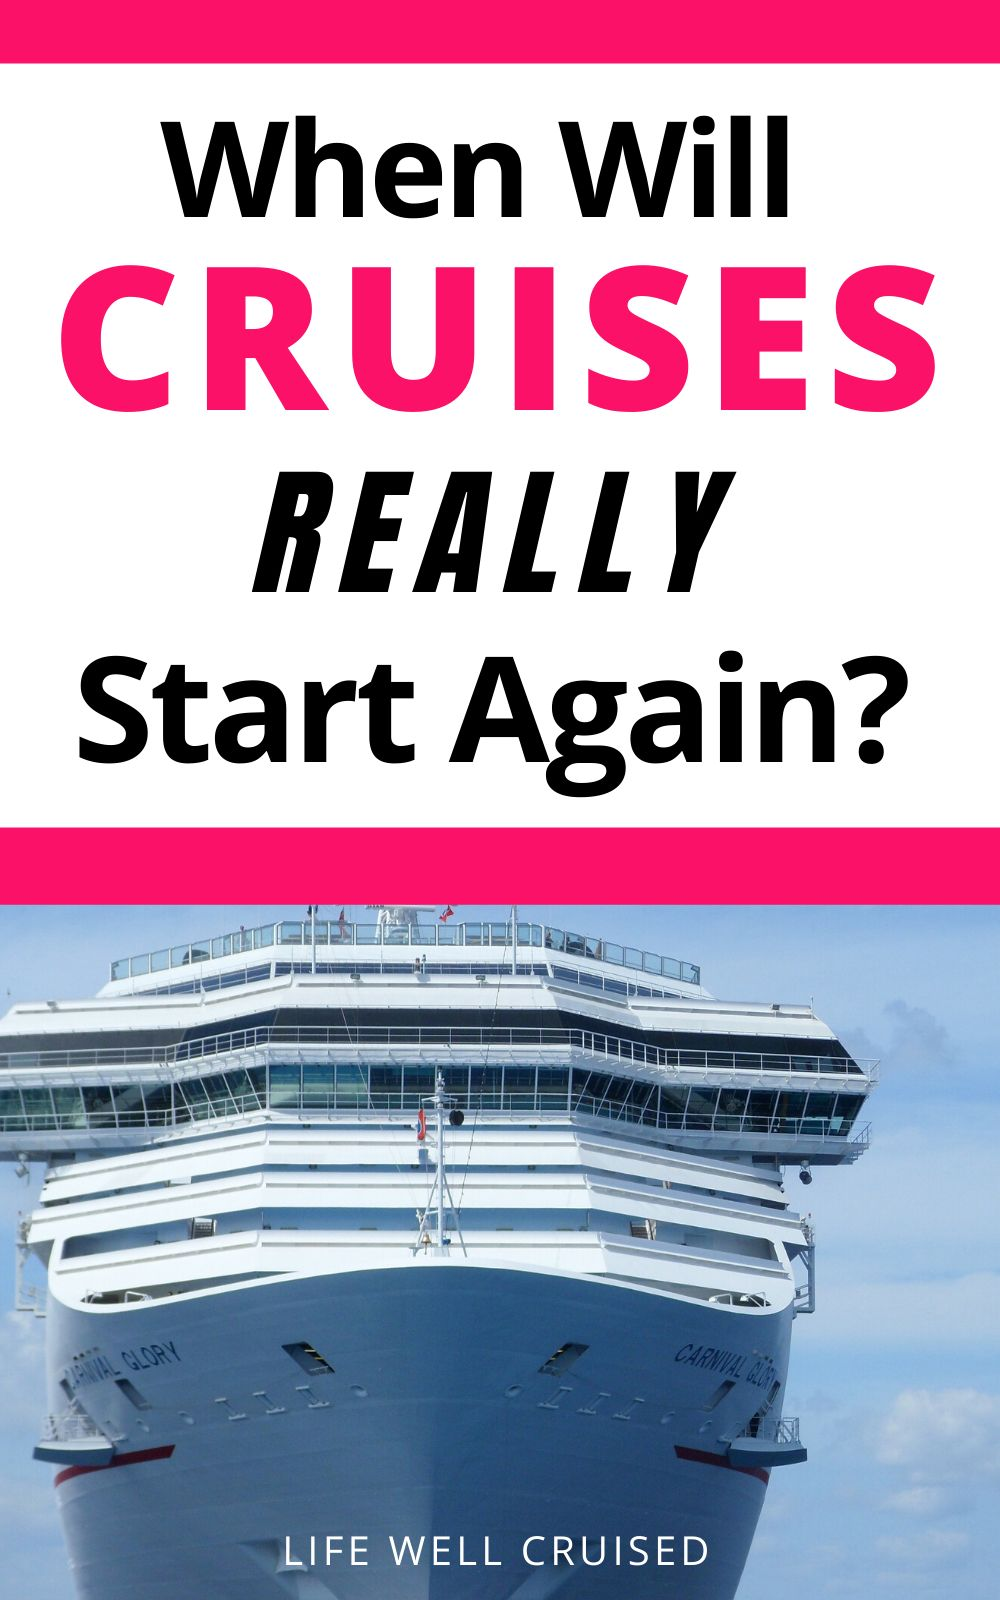 When Will Cruises Really Start Again? 7 Things to Know